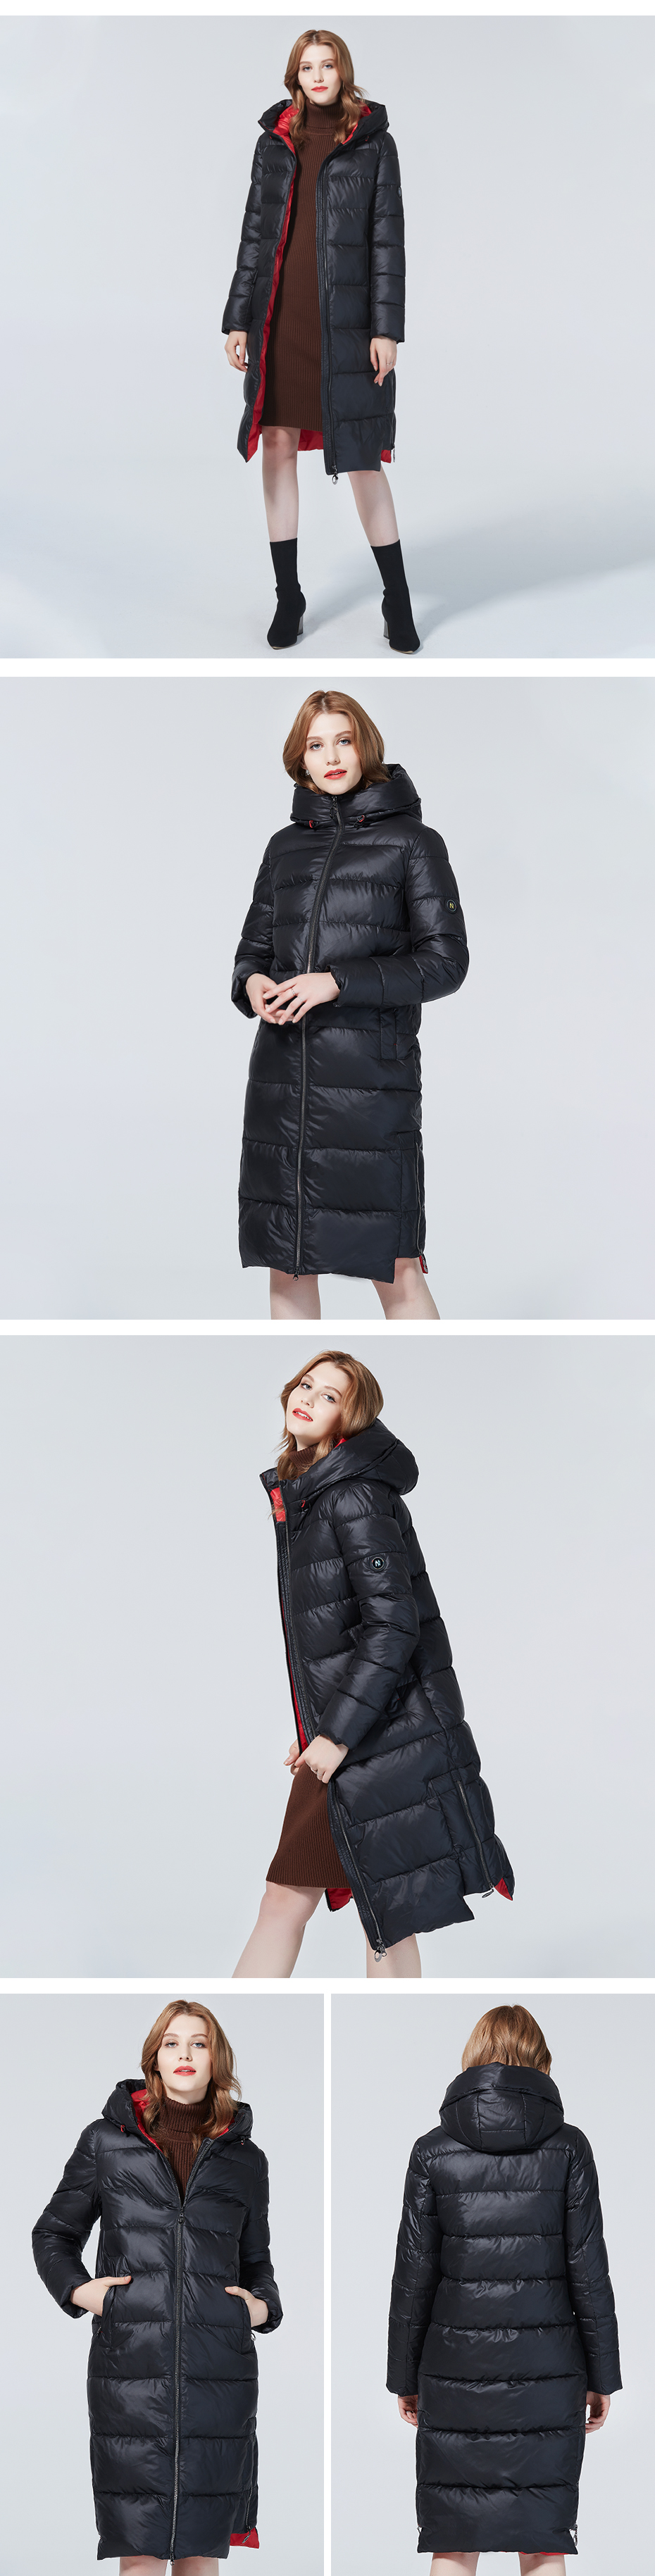 Diaosnowly 2020 new long thick jackets for women winter hooded fashion winter outwear coats for women warm long parka fashion winter clothes women long winter brand thick jacket and coat women winter hooded parka